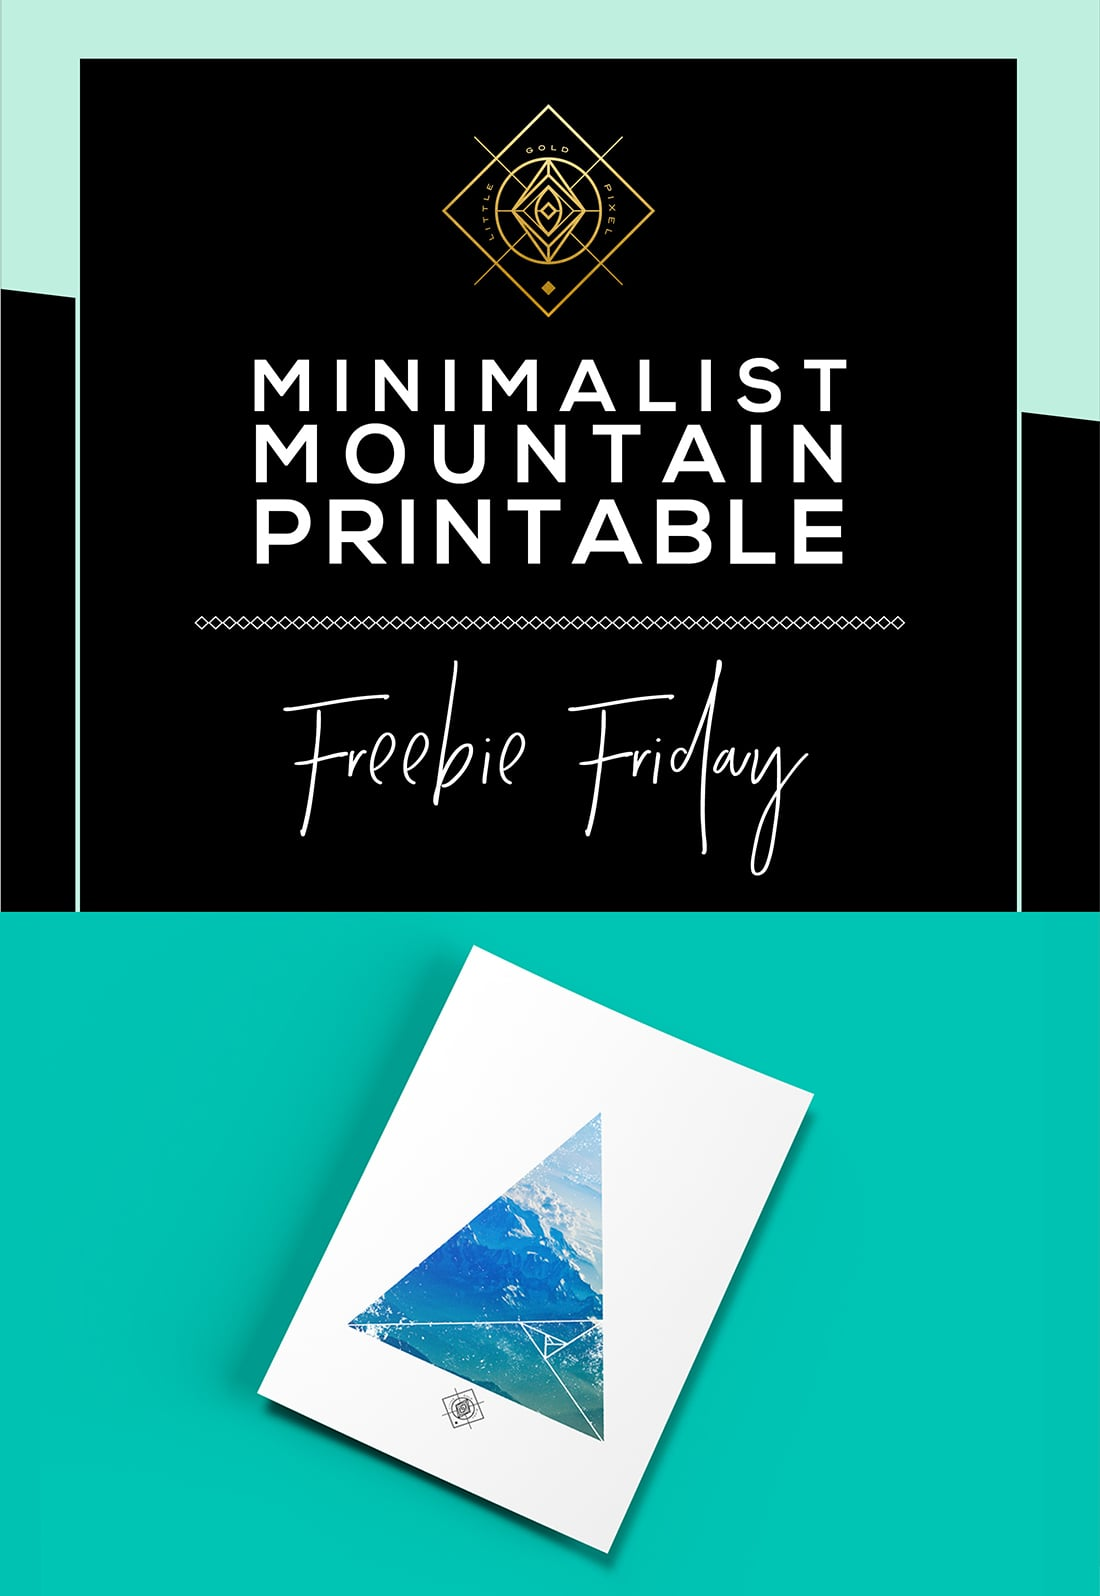 Minimalist Mountain Printable • Freebie Fridays • Little Gold Pixel